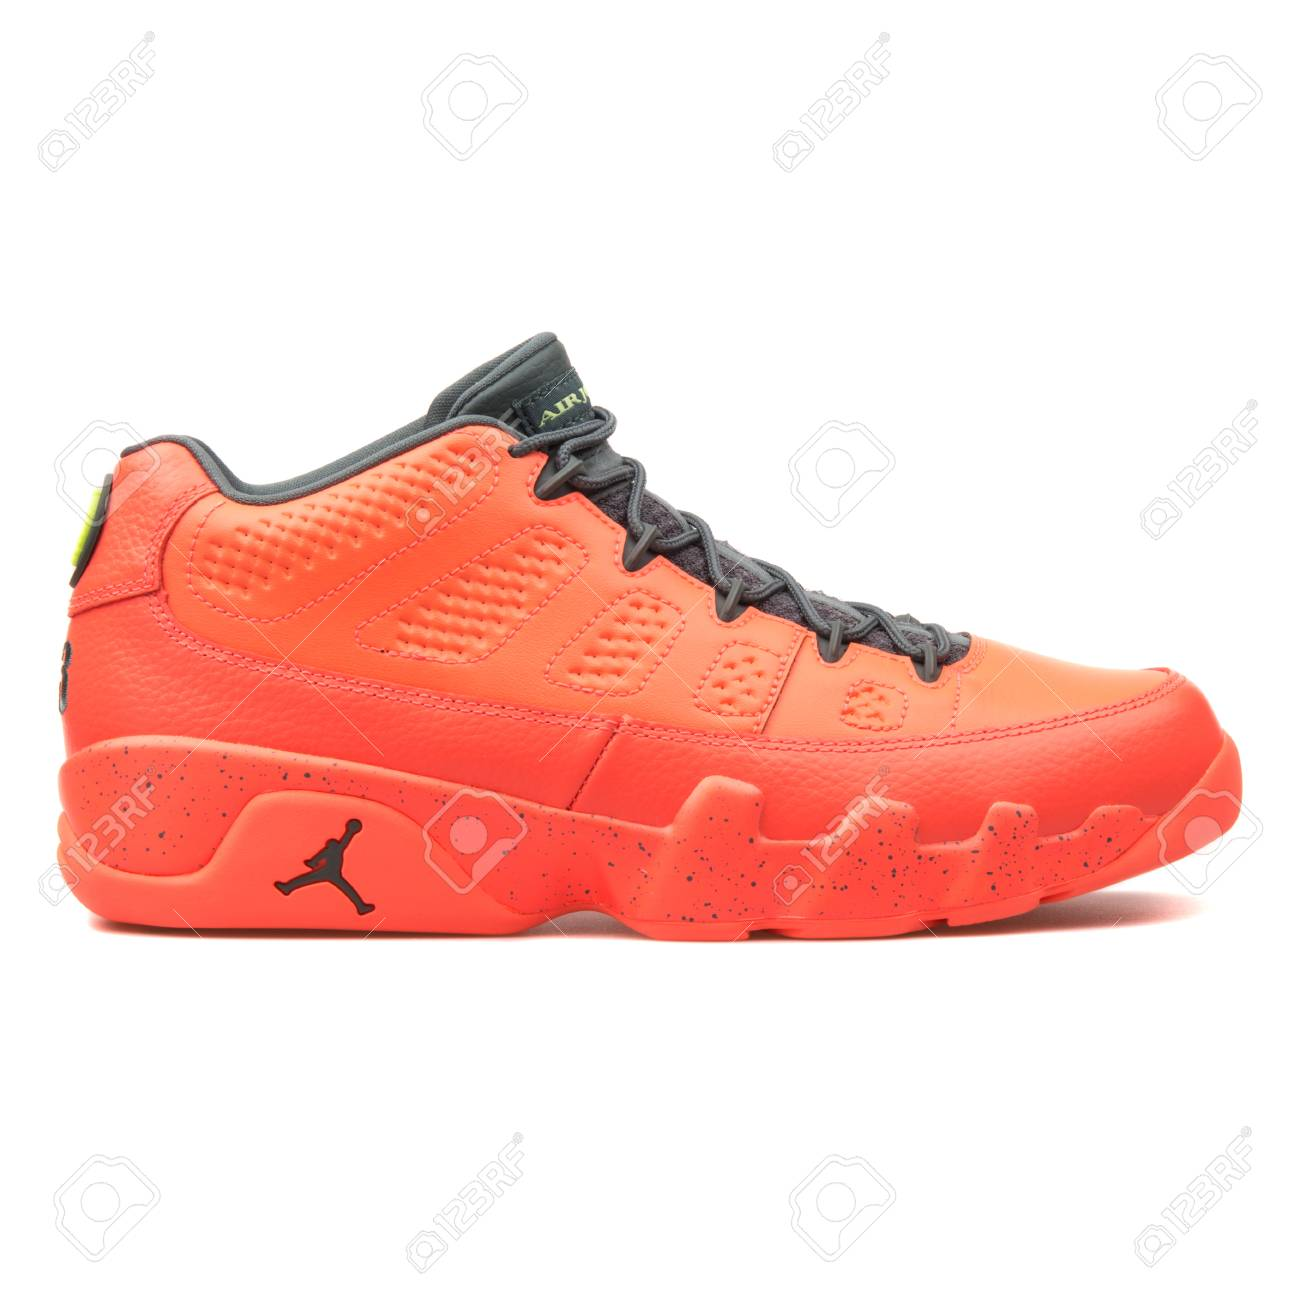 the best attitude c6db2 a4355 Stock Photo - VIENNA, AUSTRIA - JUNE 14, 2017: Nike Air Jordan 9 Retro Low  bright mango sneaker isolated on grey background